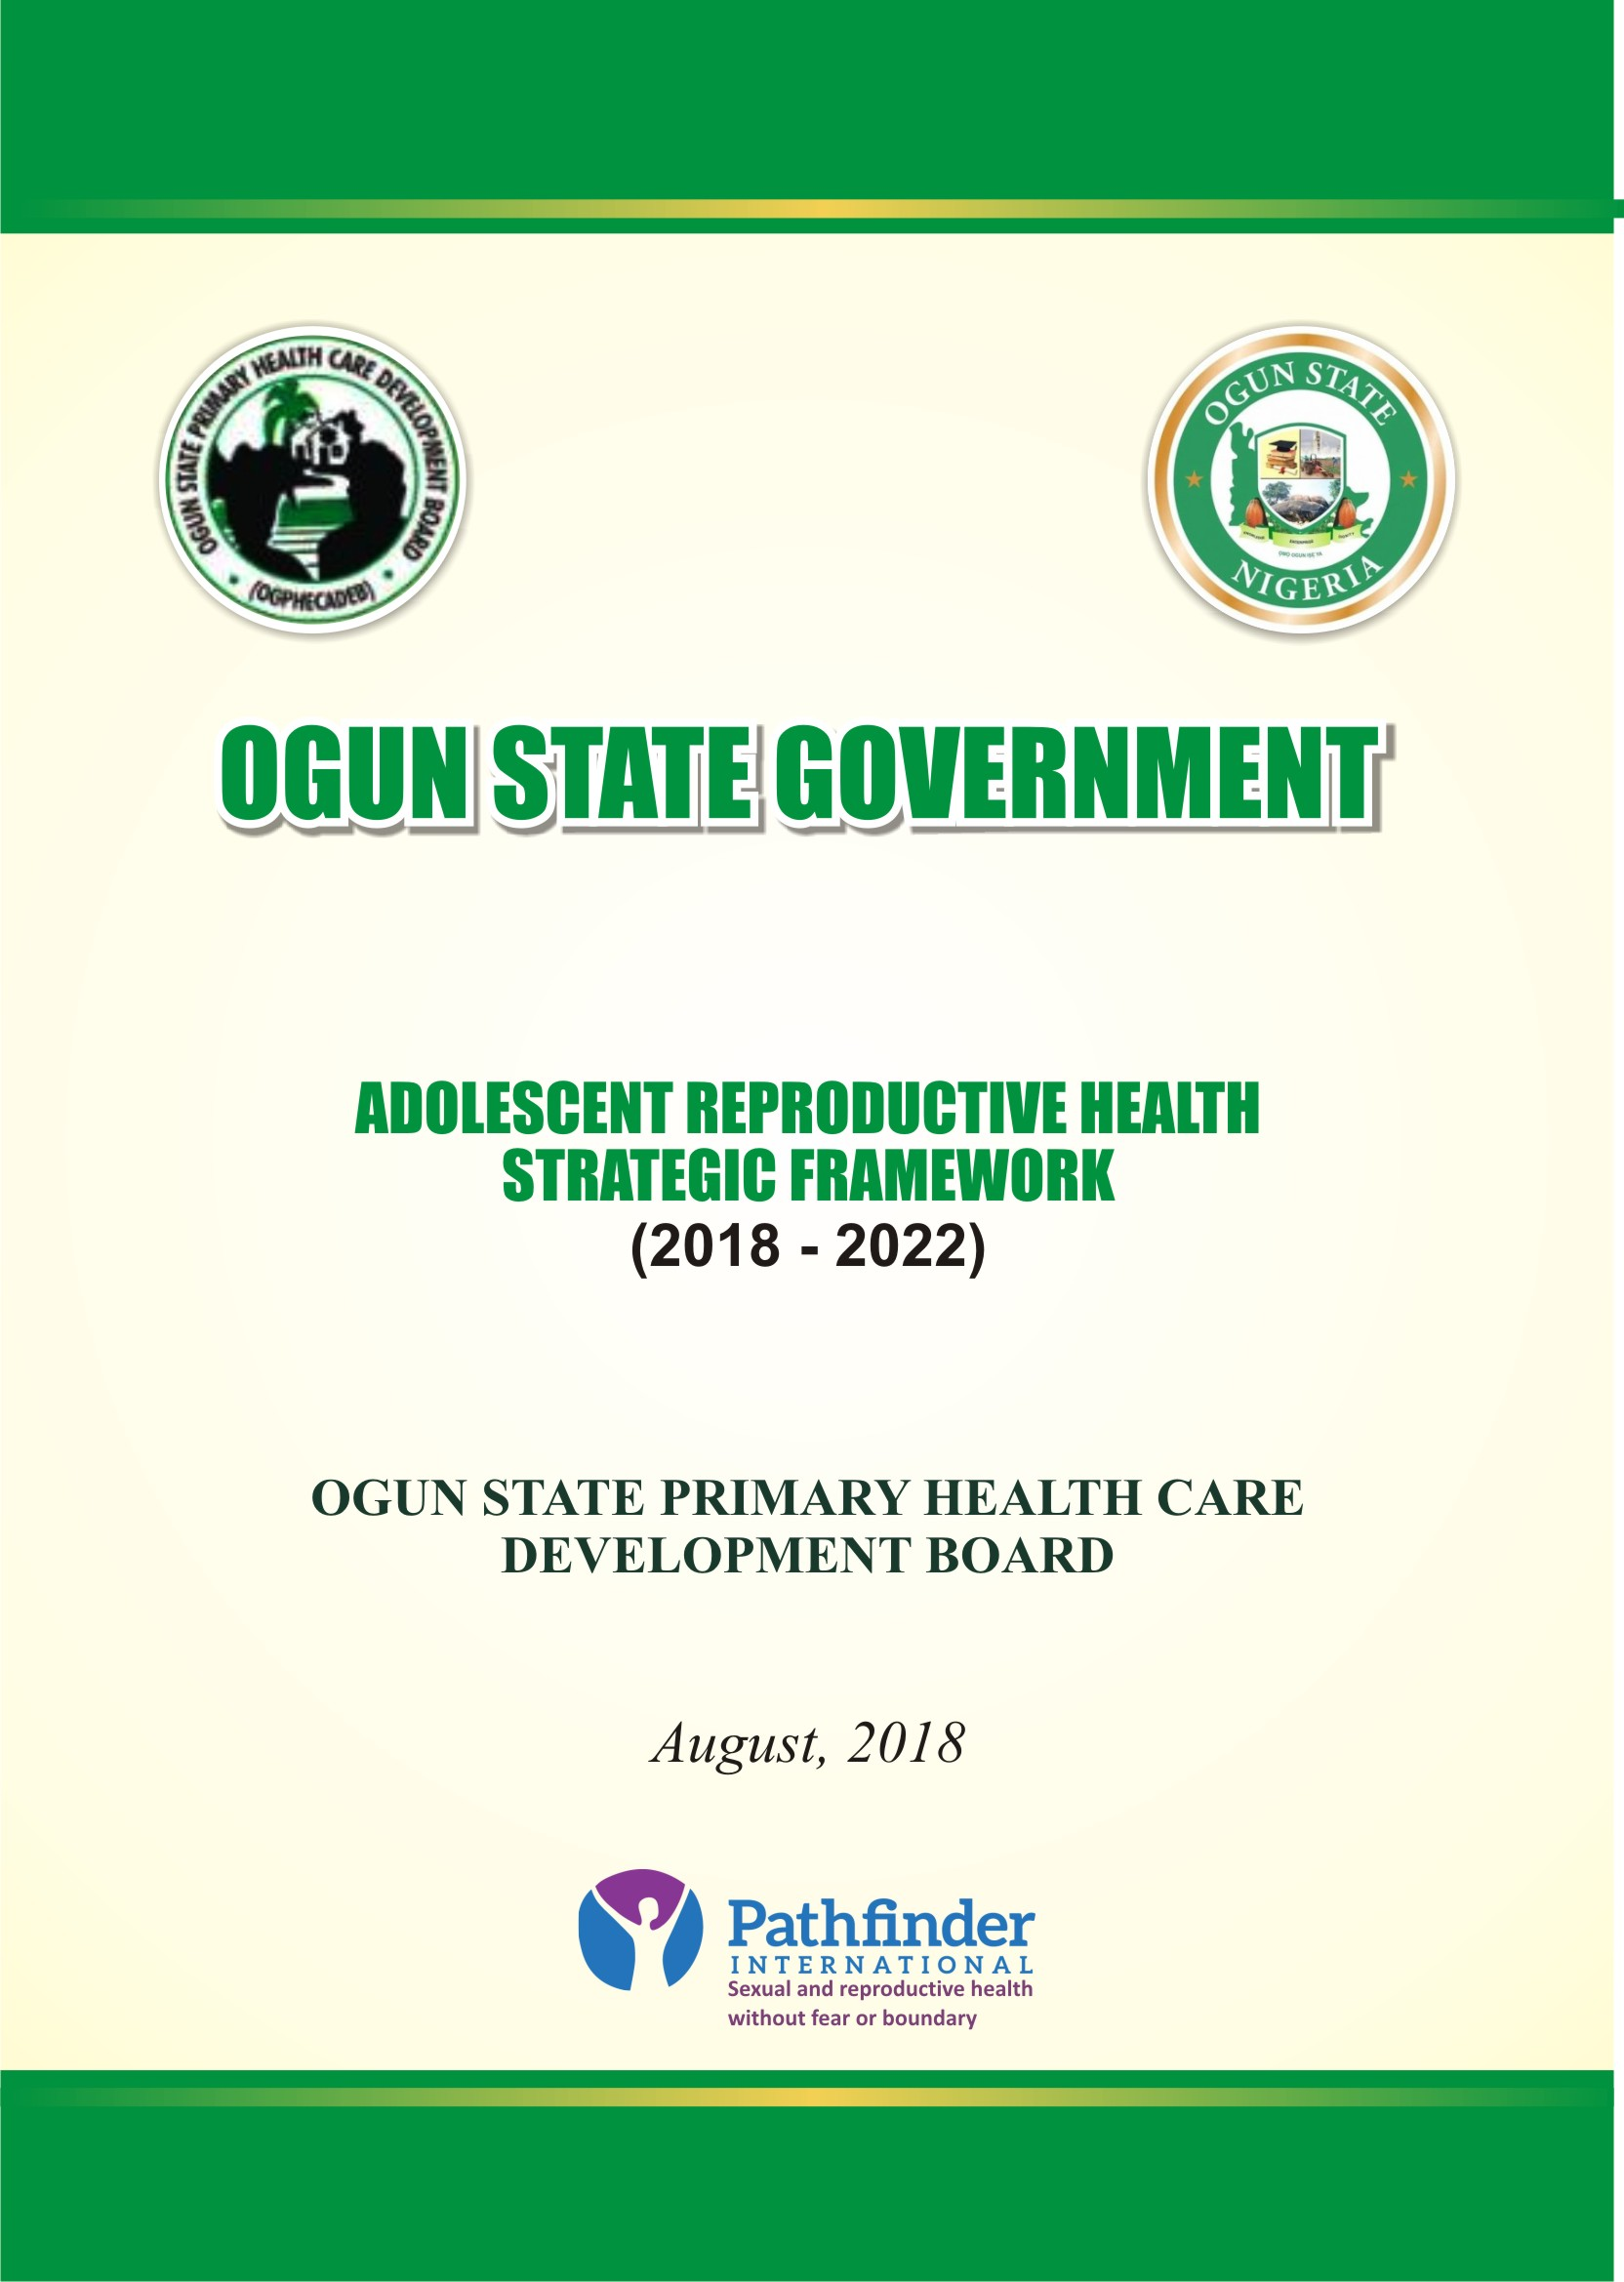 Adolescent Reproductive Health Strategic Framework